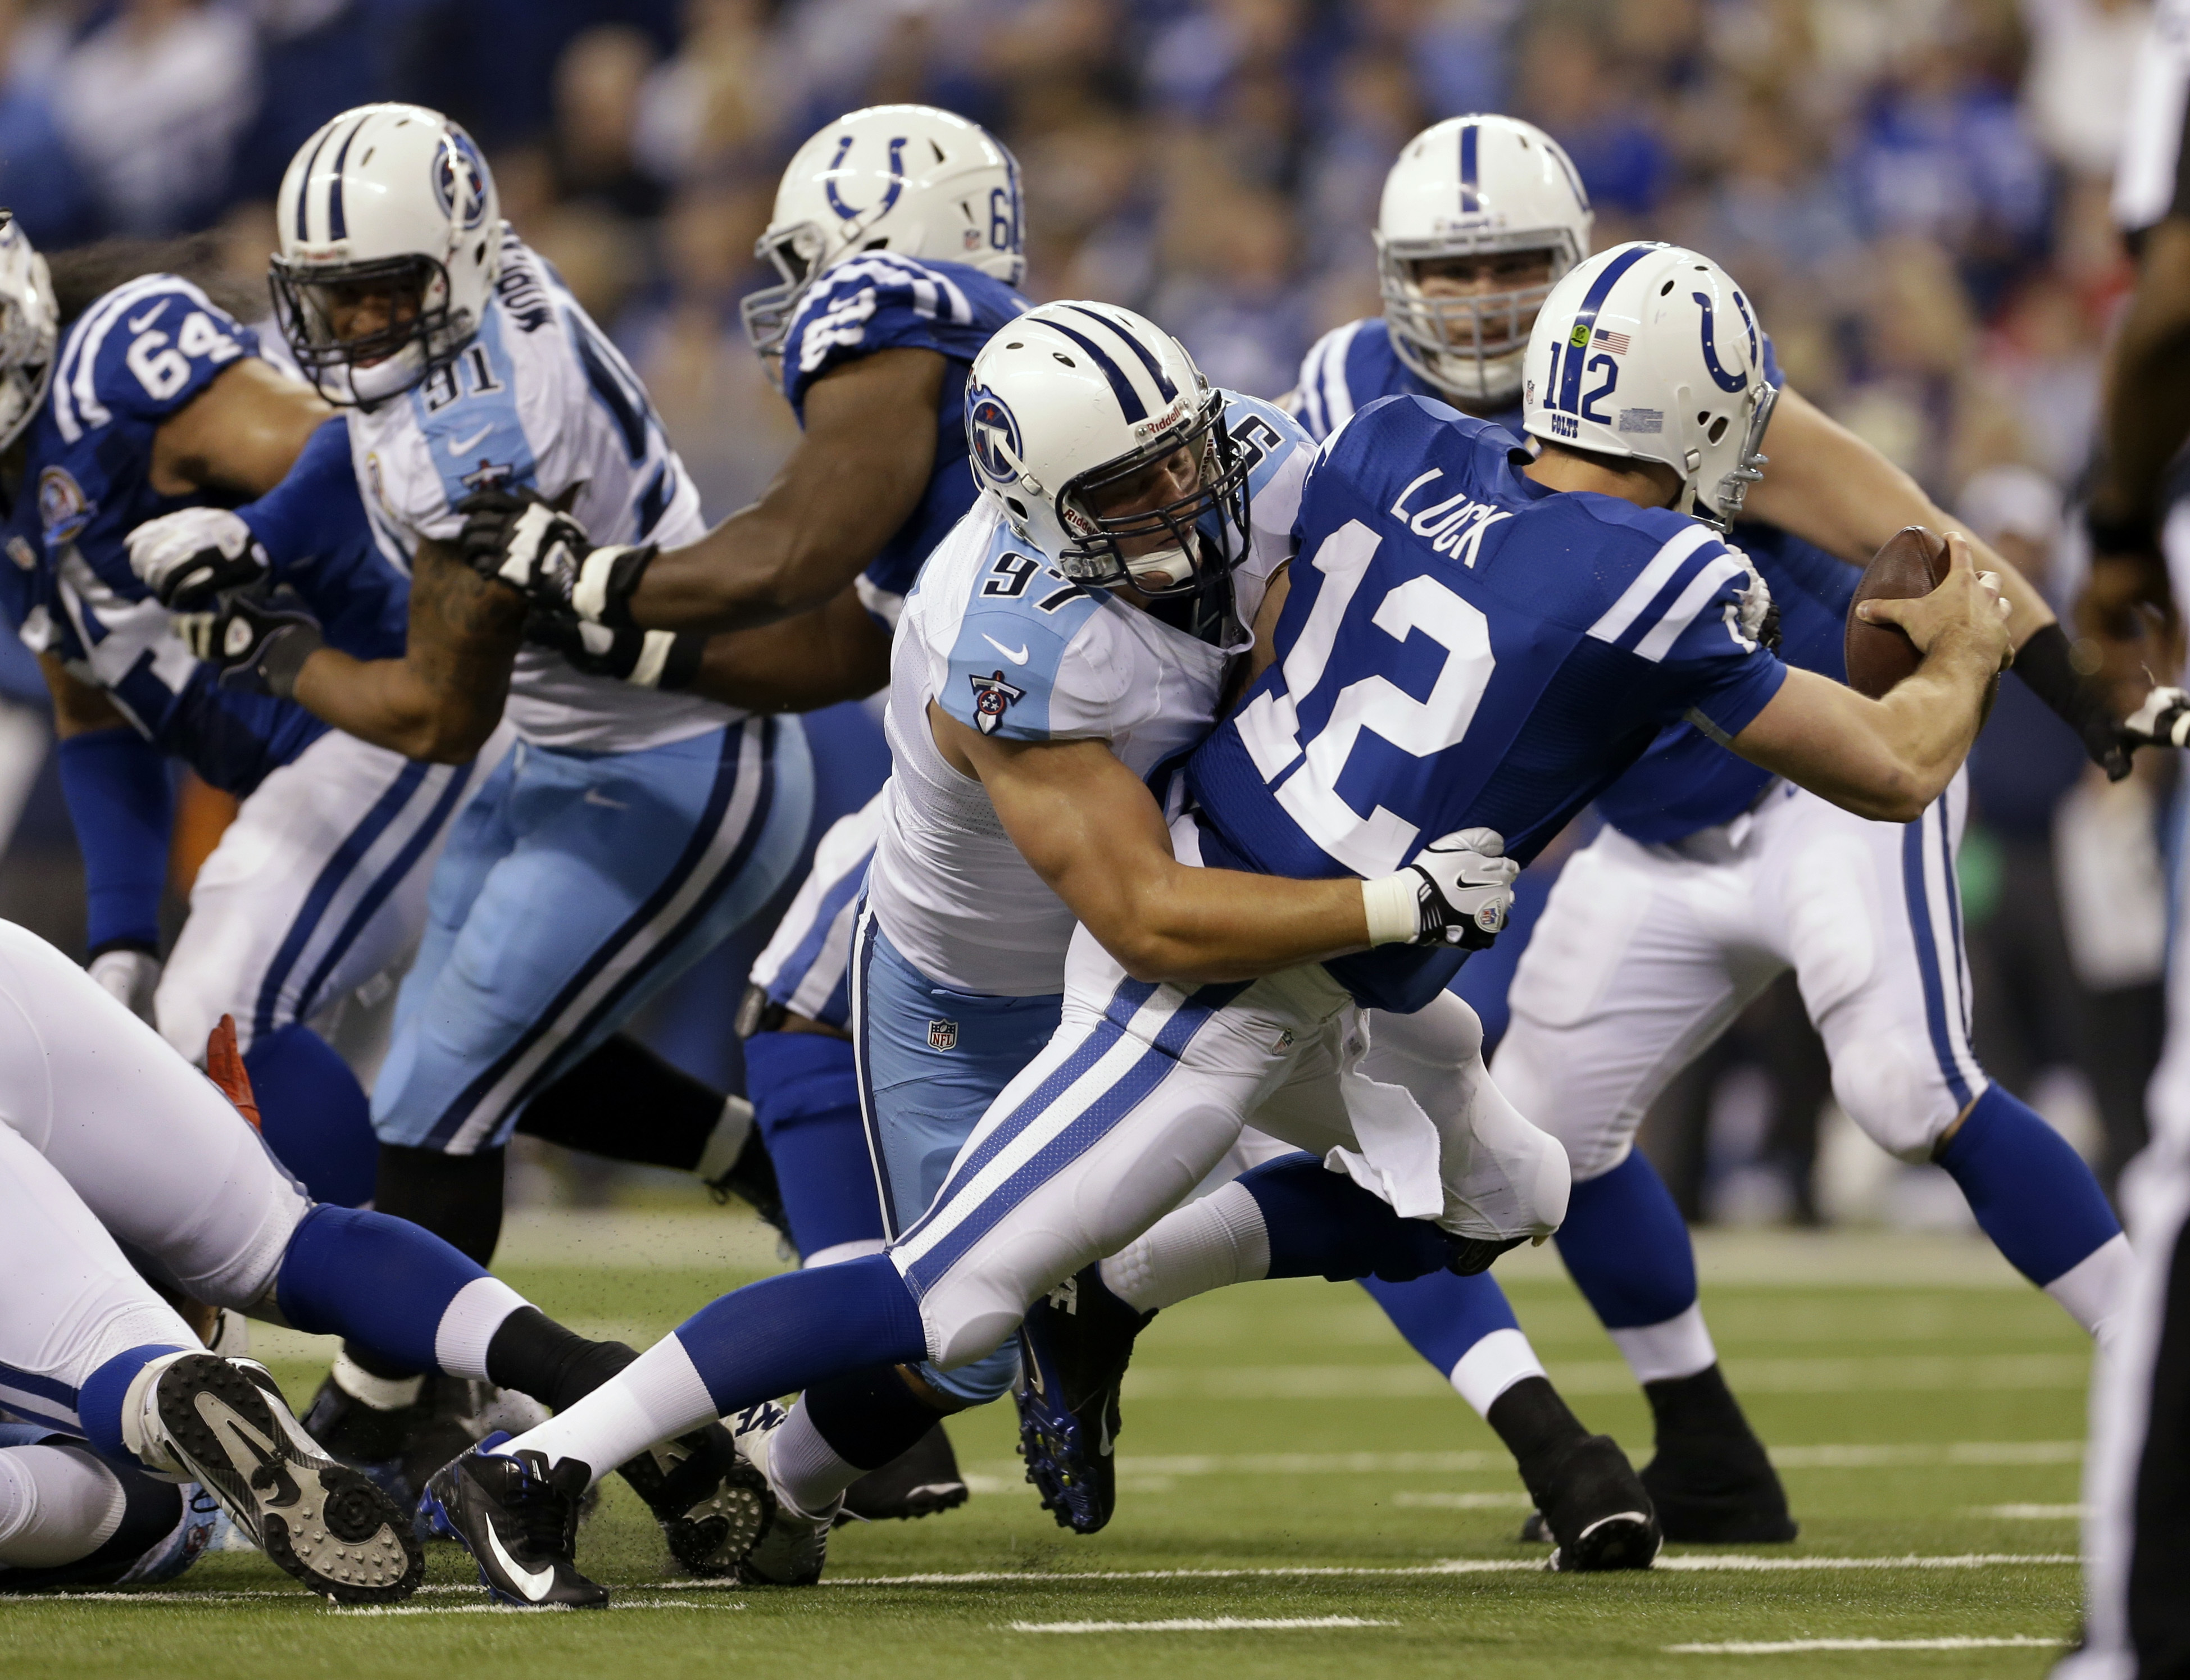 FILE - In this Dec. 2, 2012, file photo, Indianapolis Colts' Andrew Luck (12) is sacked by Tennessee Titans' Karl Klug (97) during the first half of an NFL football game in Indianapolis. The Titans have piled up 12 sacks over the past two games and are am